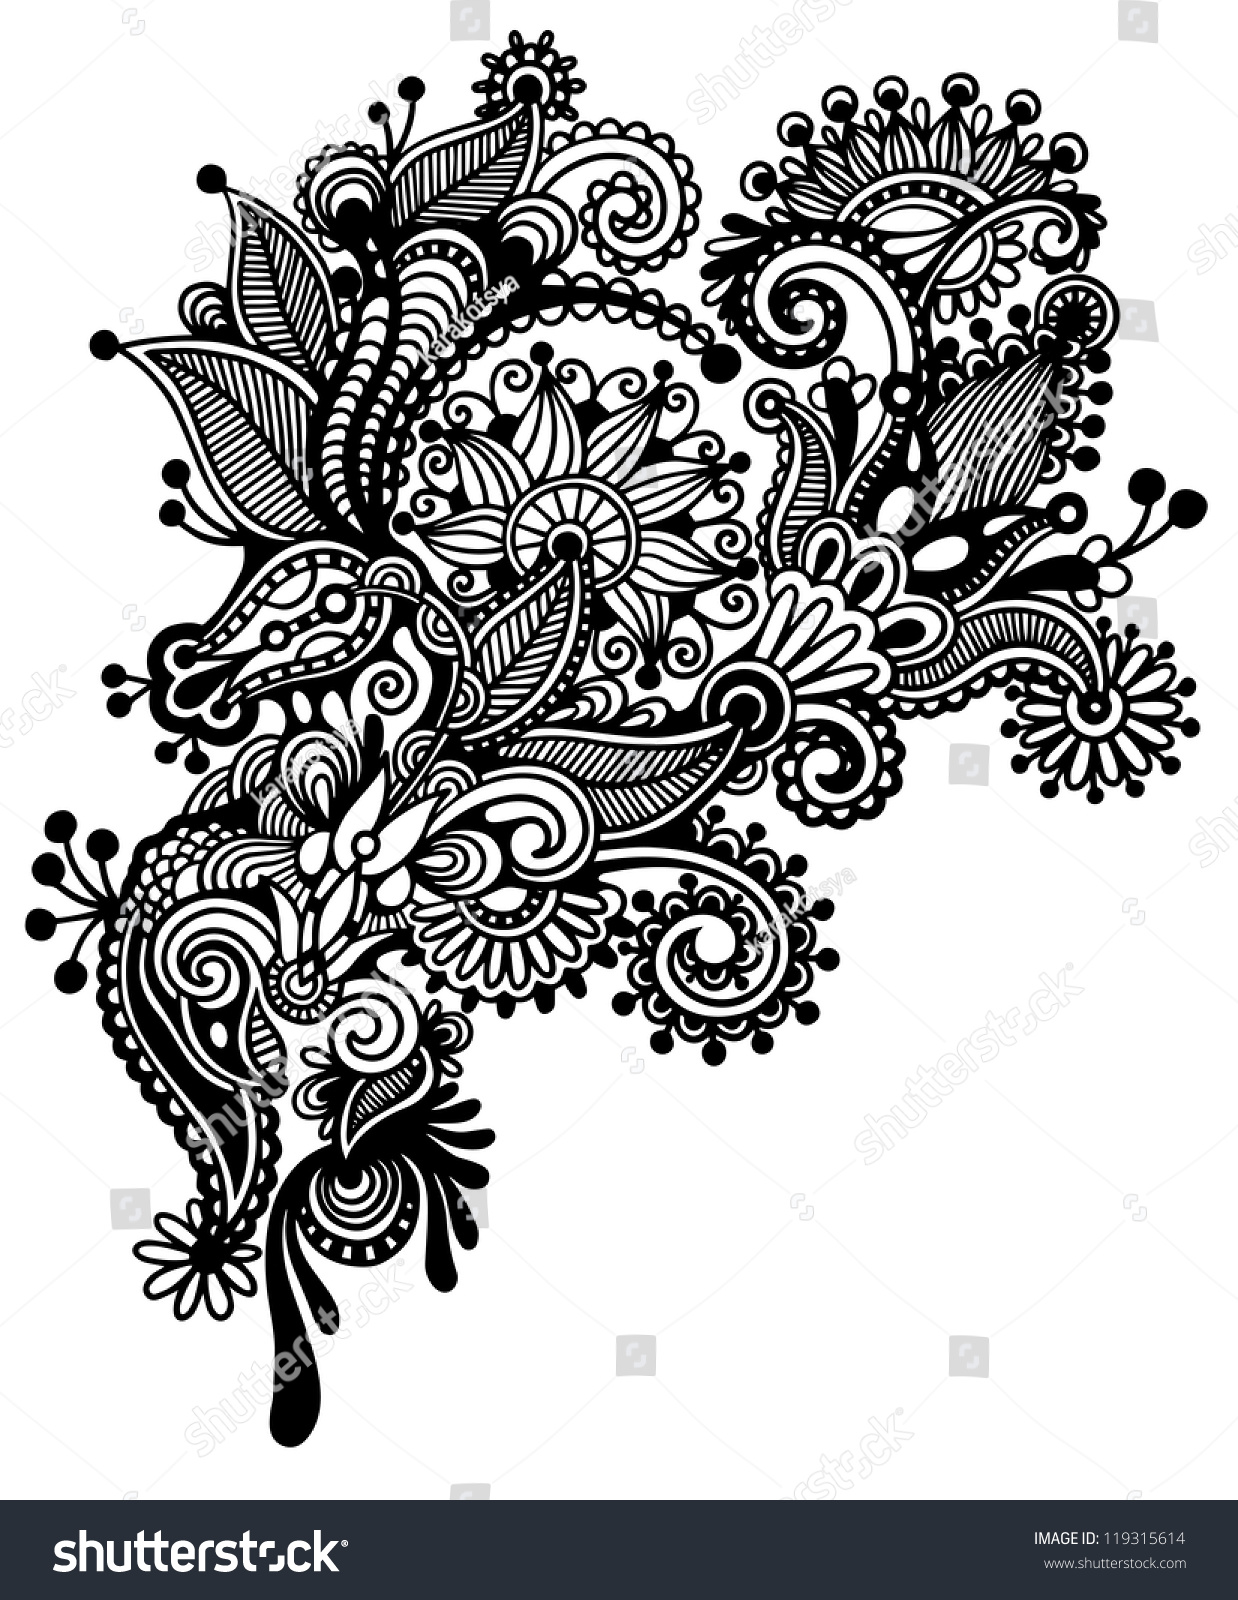 Hand draw black white line art stock vector 119315614 shutterstock - Design art black and white ...